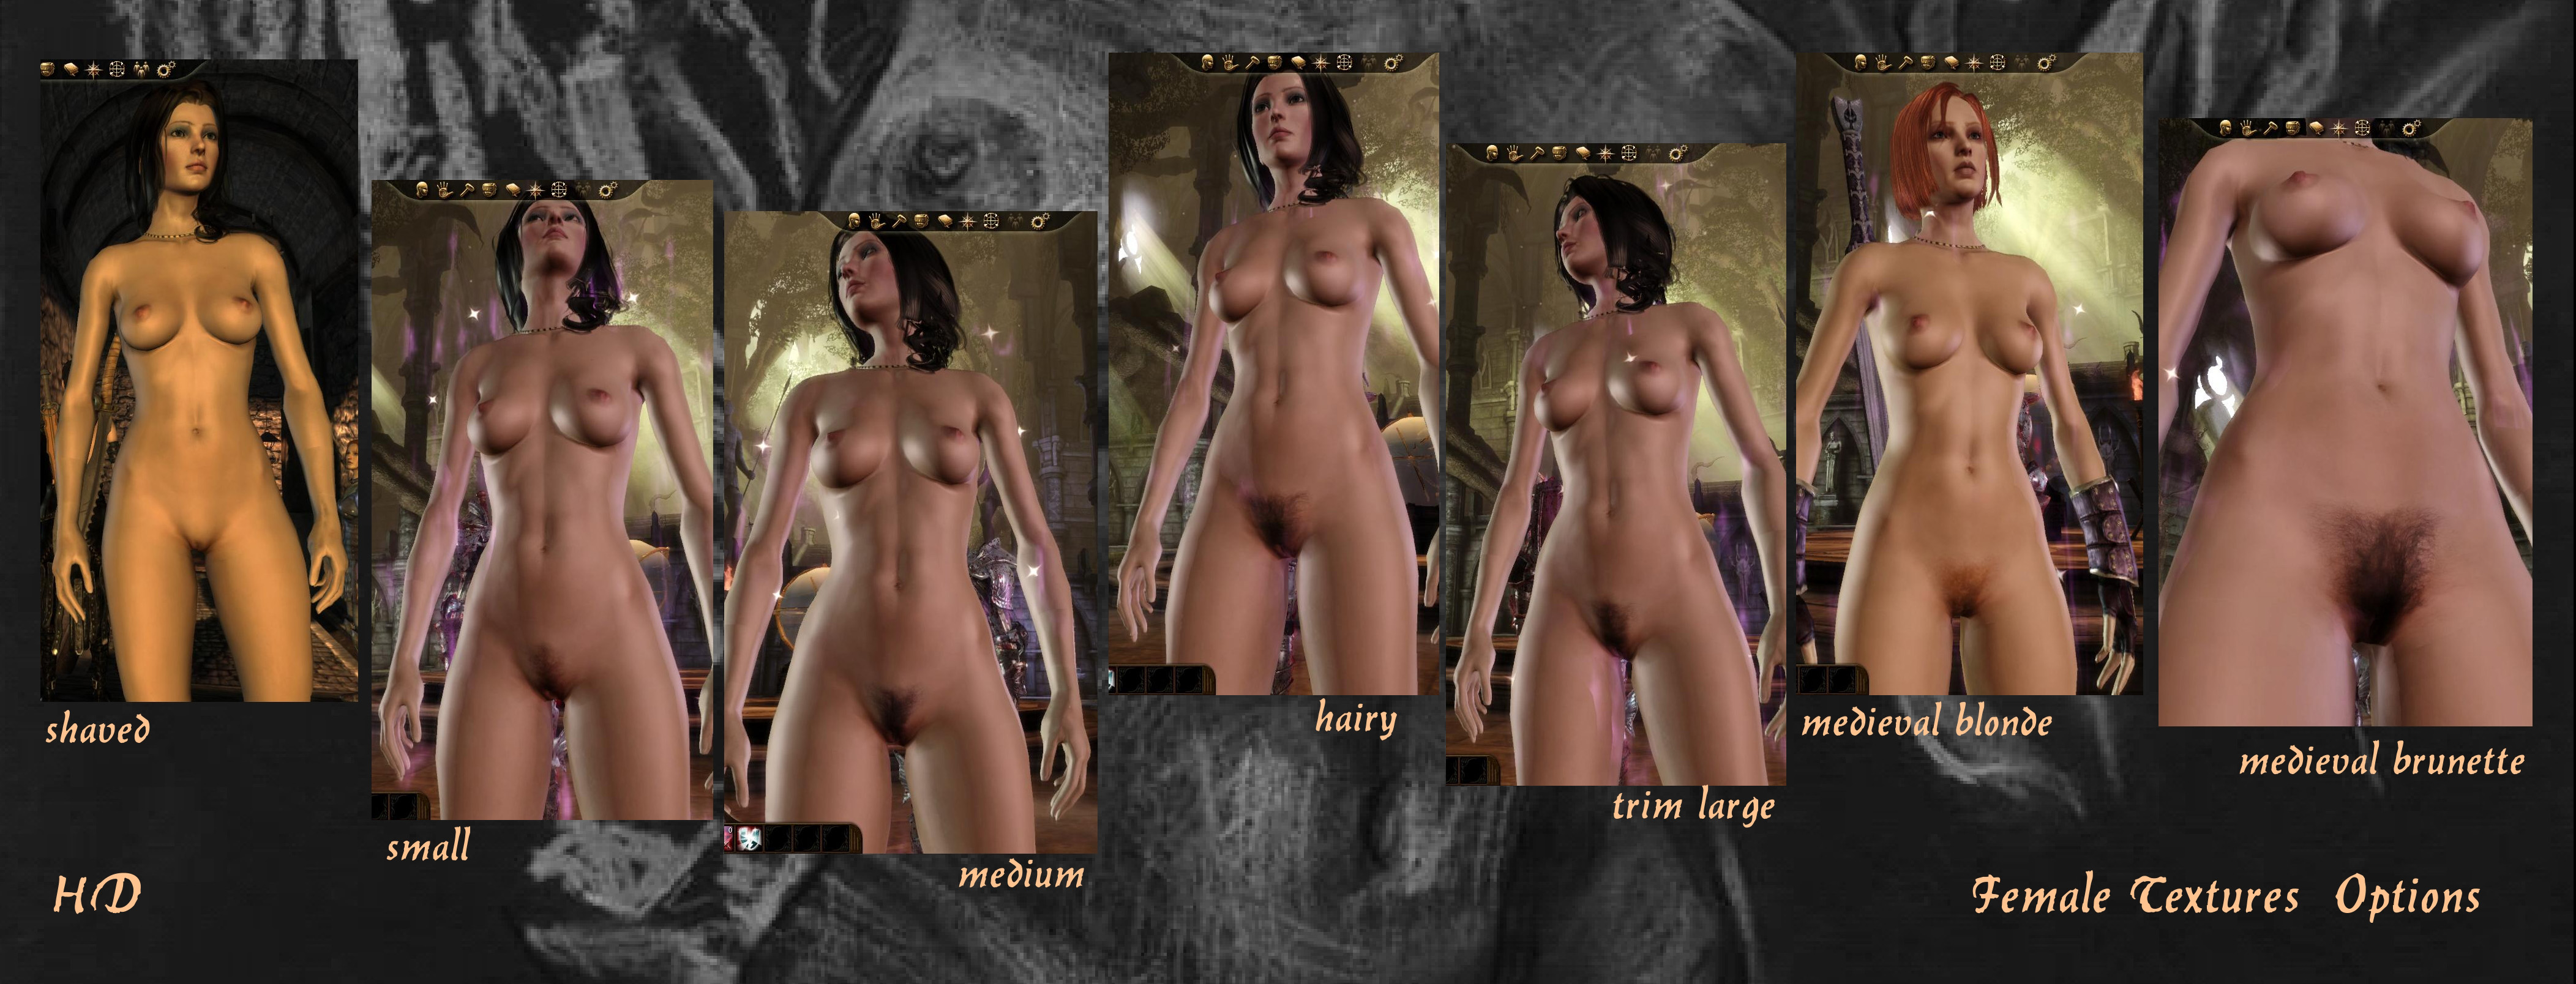 sword new world nude patch jpg 1500x1000